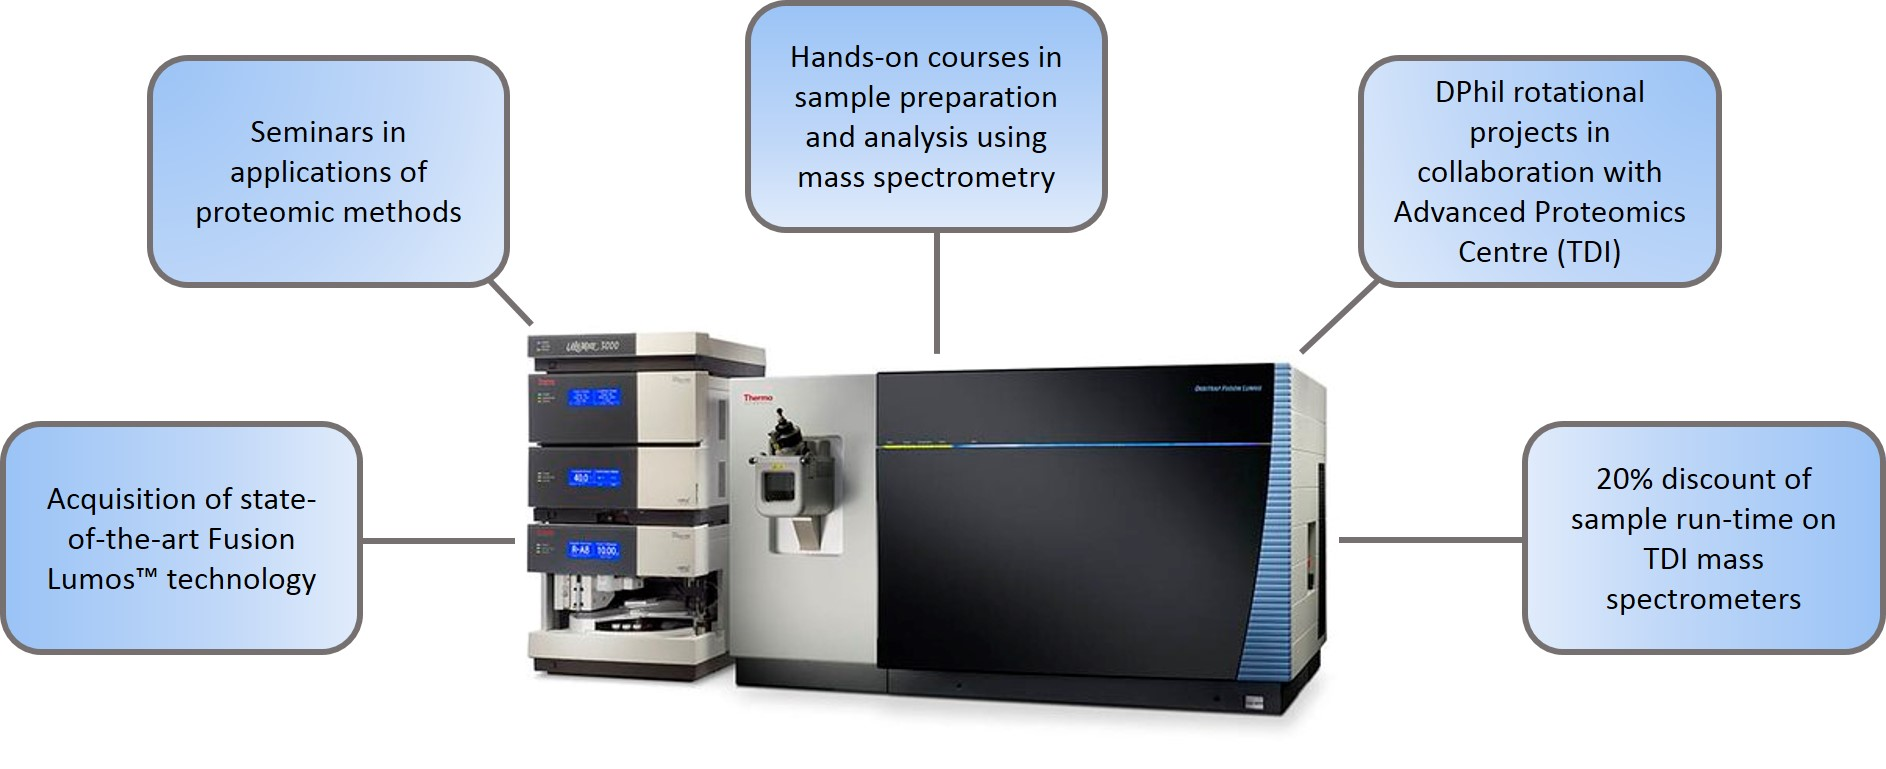 Mass spectrometry training & equipment.jpg